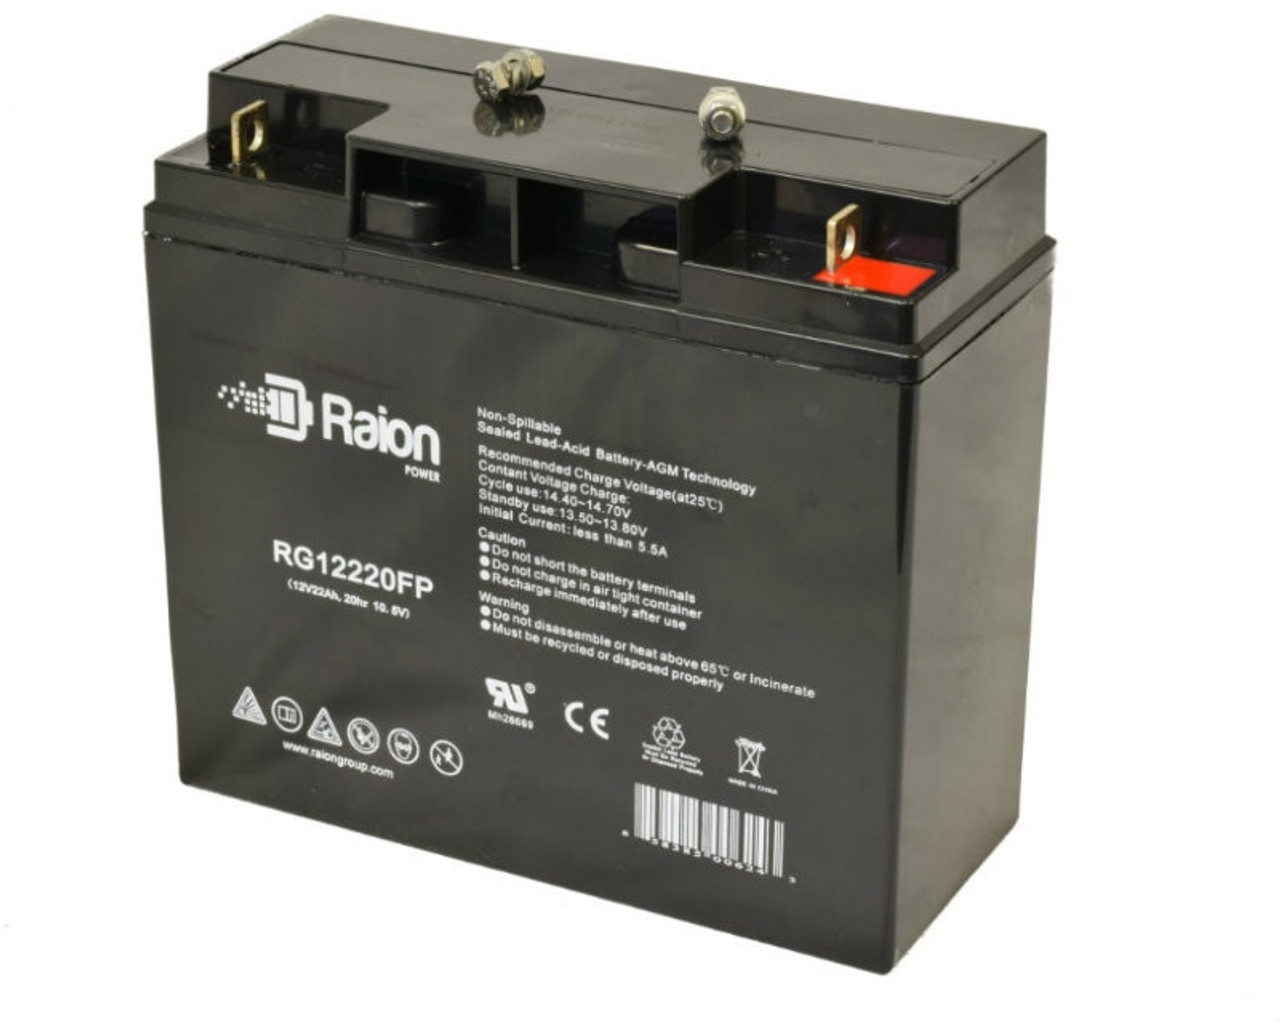 Raion Power RG12220FP Replacement Battery for Silent Partner Edge Tennis Ball Machine Large